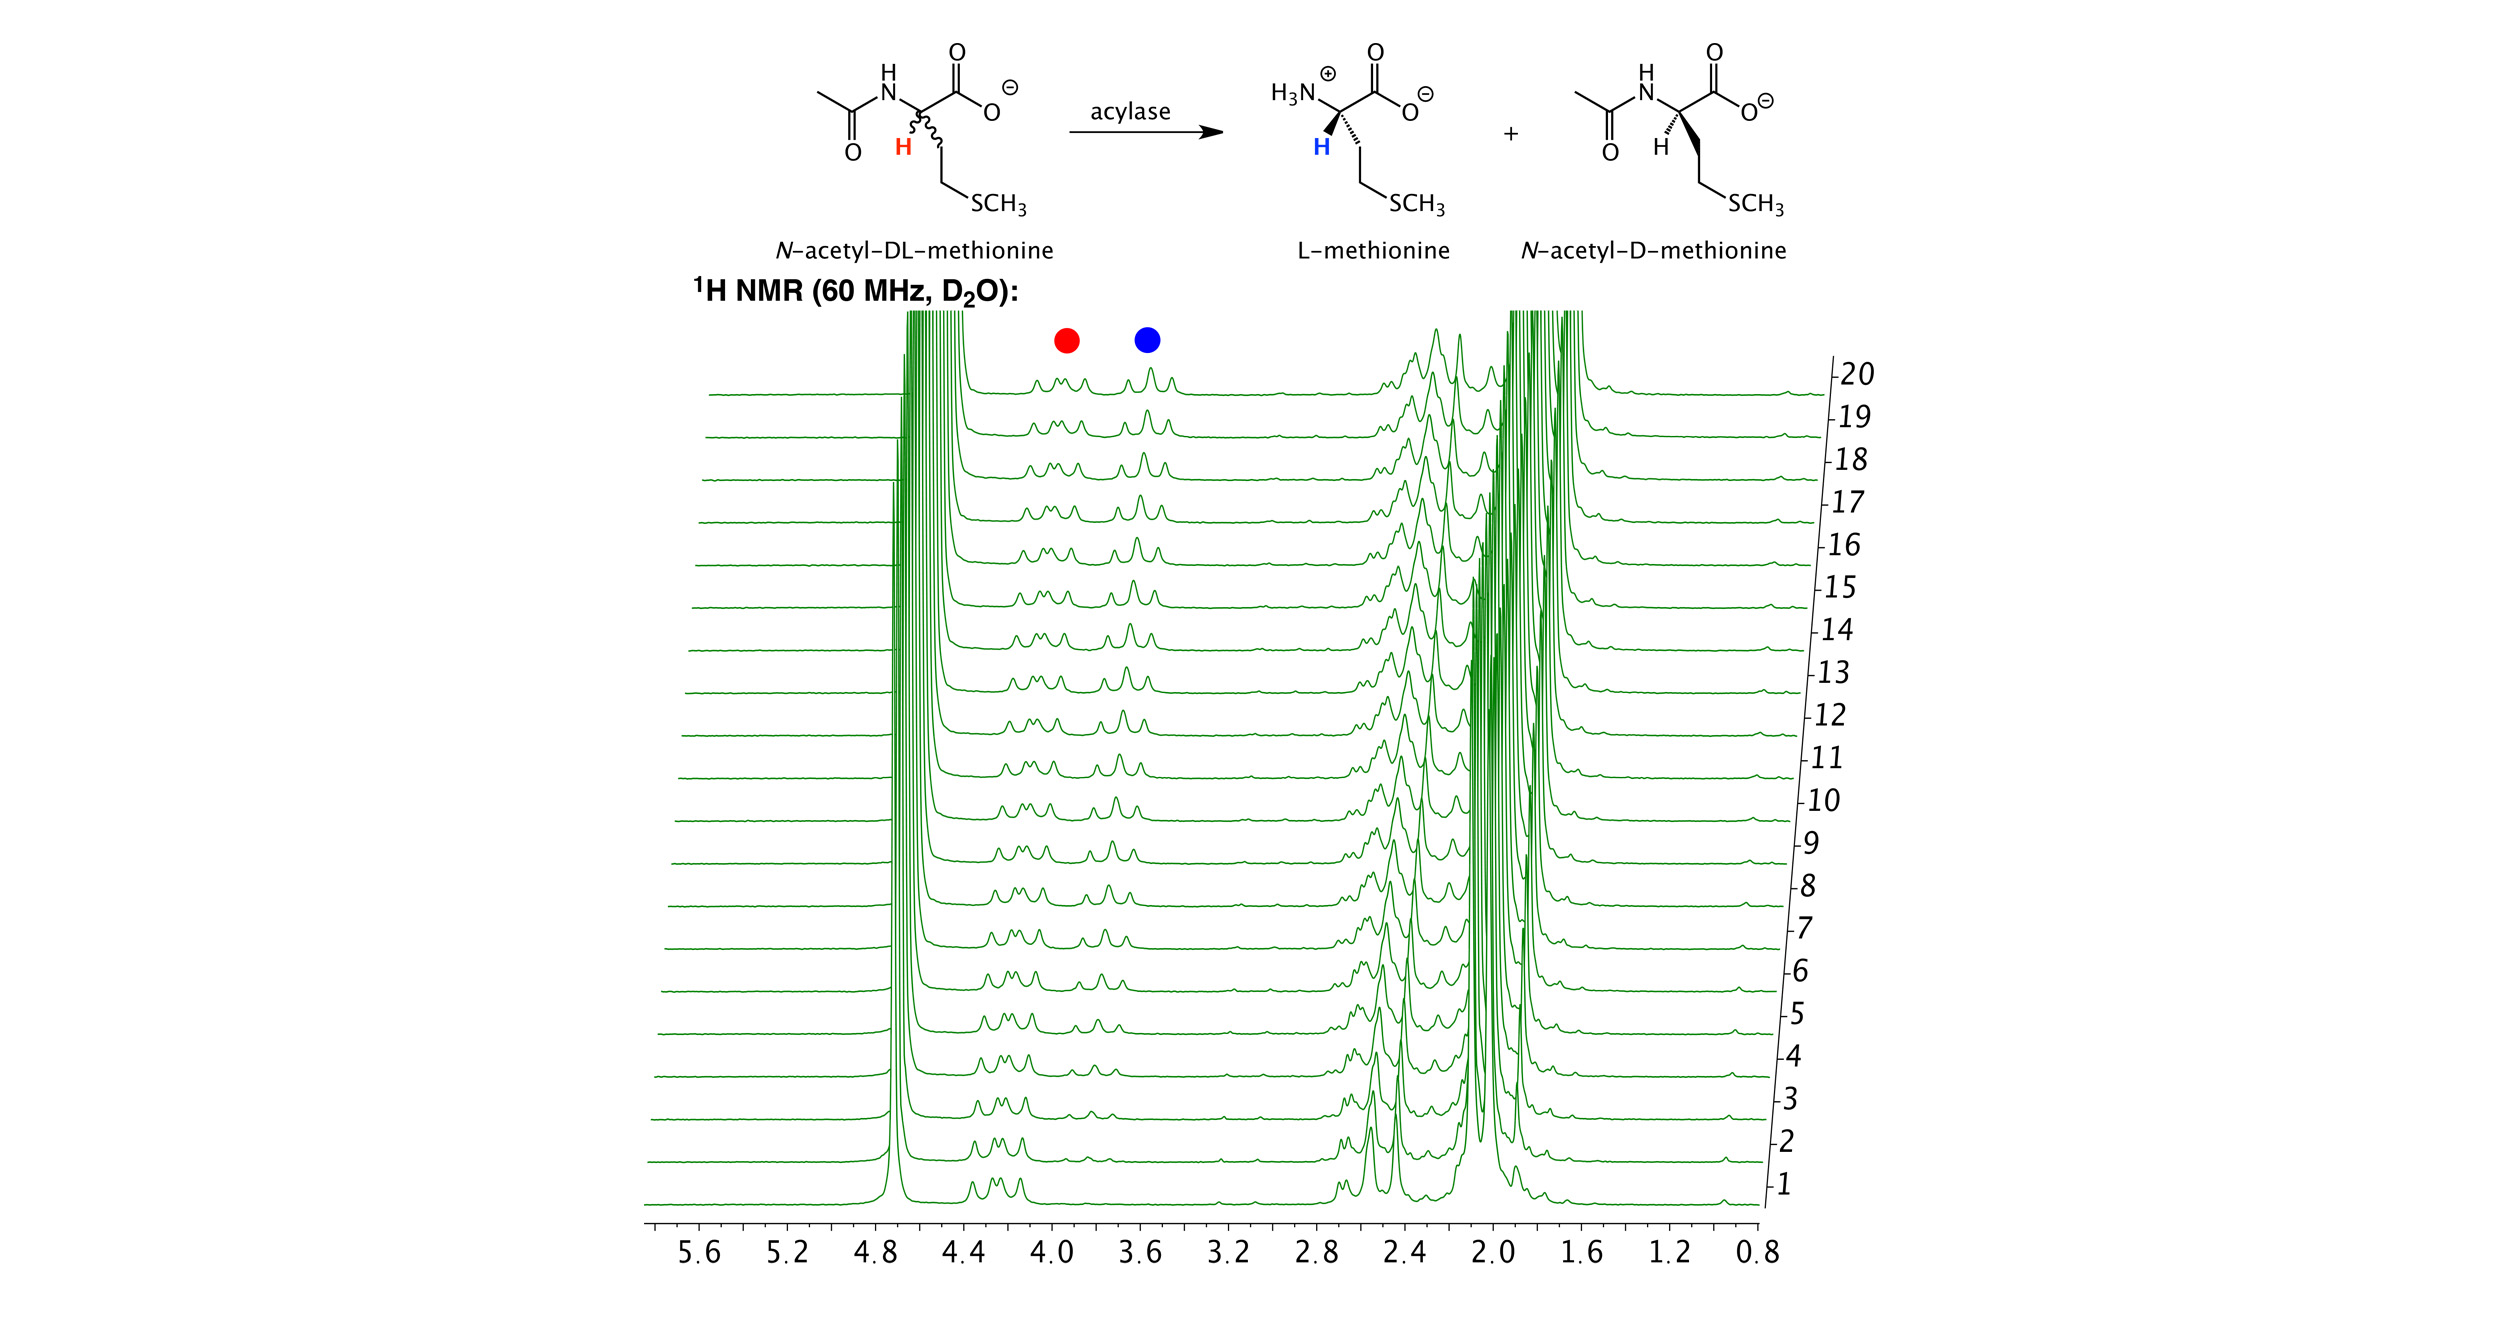 Figure 1.  Stacked plot of 1H NMR spectra of the hydrolysis of  N -acetyl-DL-methionine by porcine acylase to produce L-methionine.